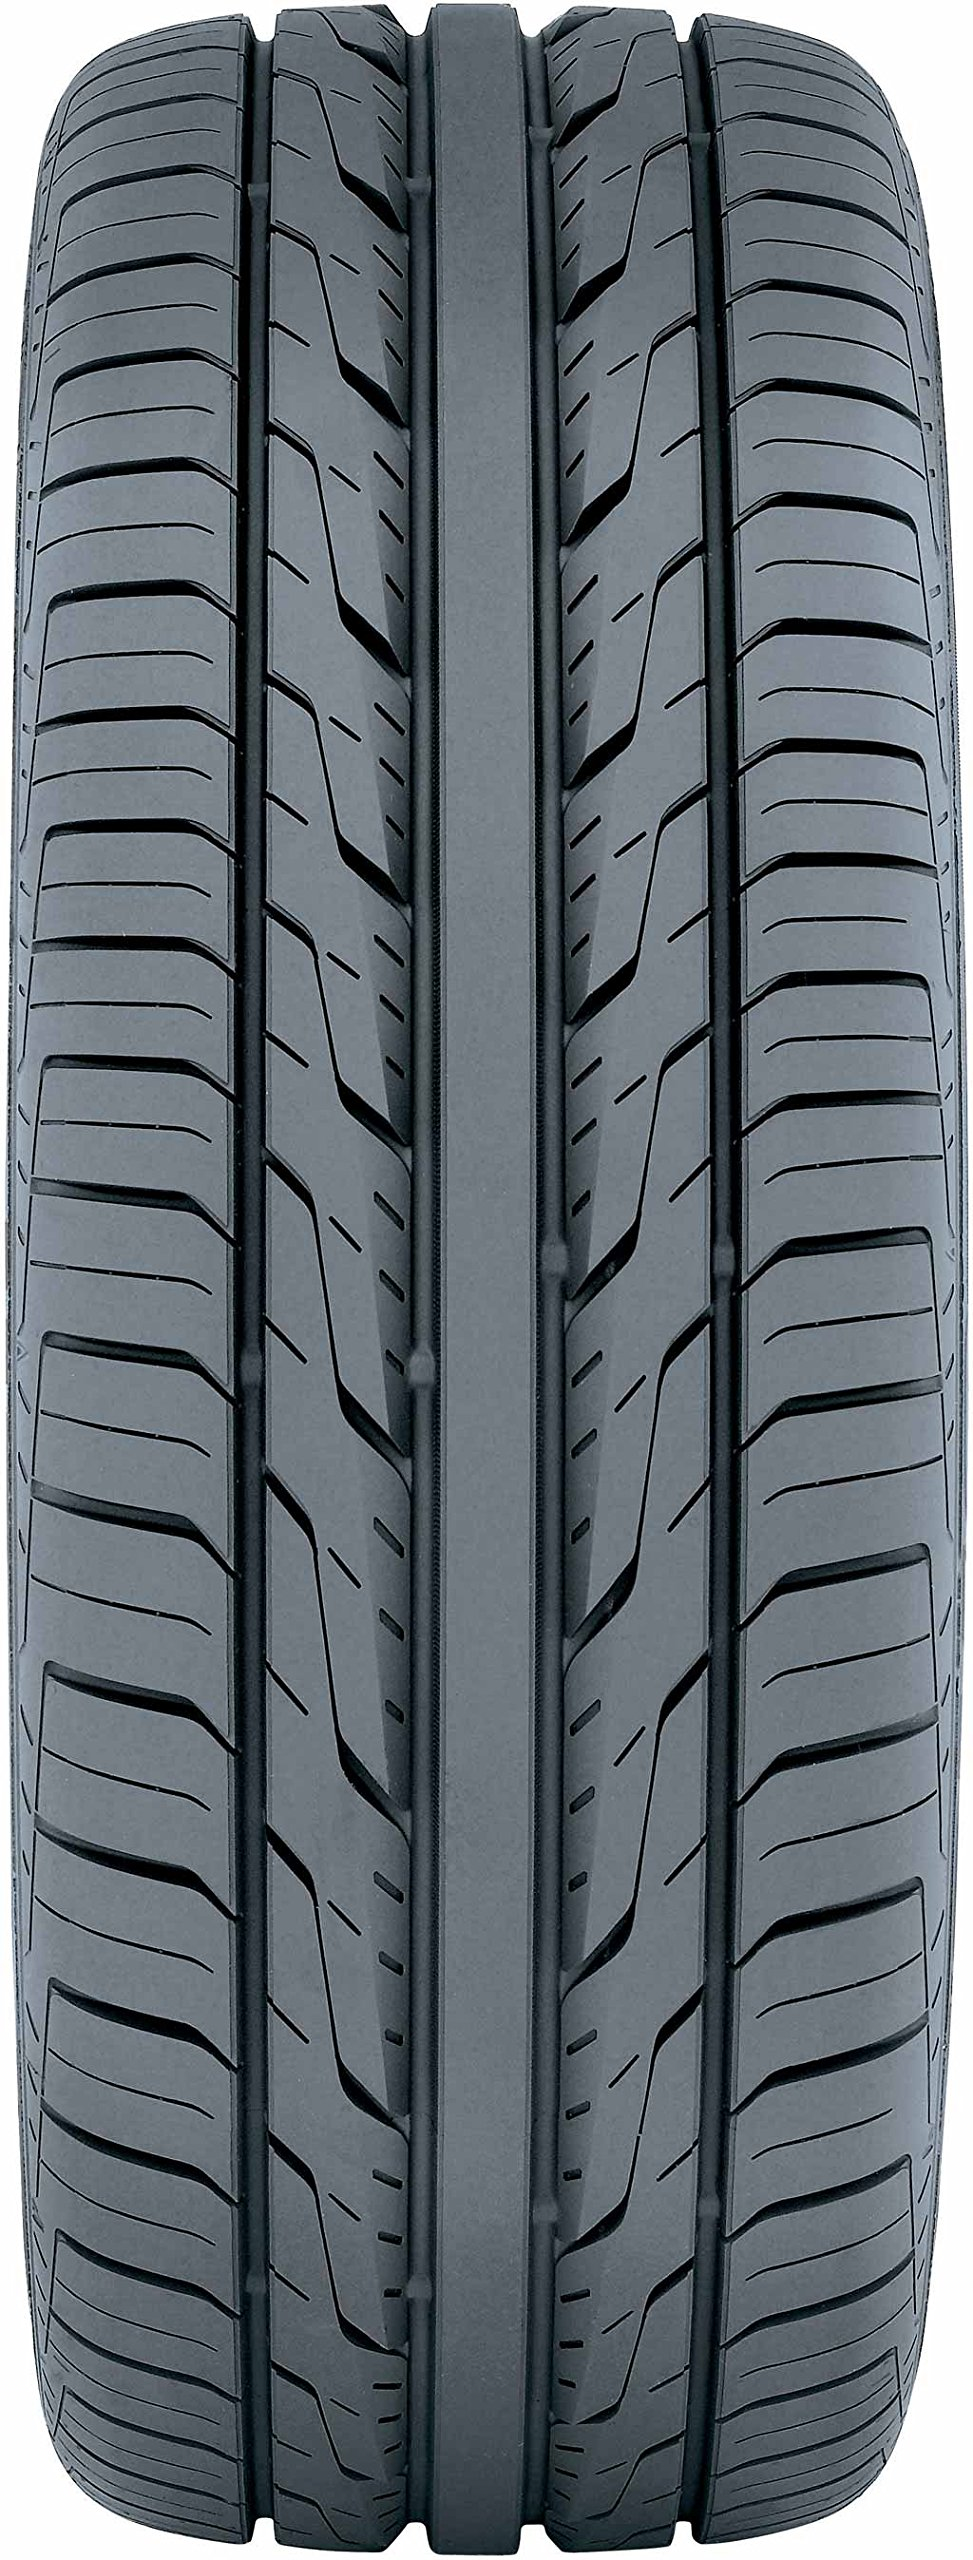 Toyo Extensa HP Performance Radial Tire - 245/40R17 95W by Toyo Tires (Image #3)